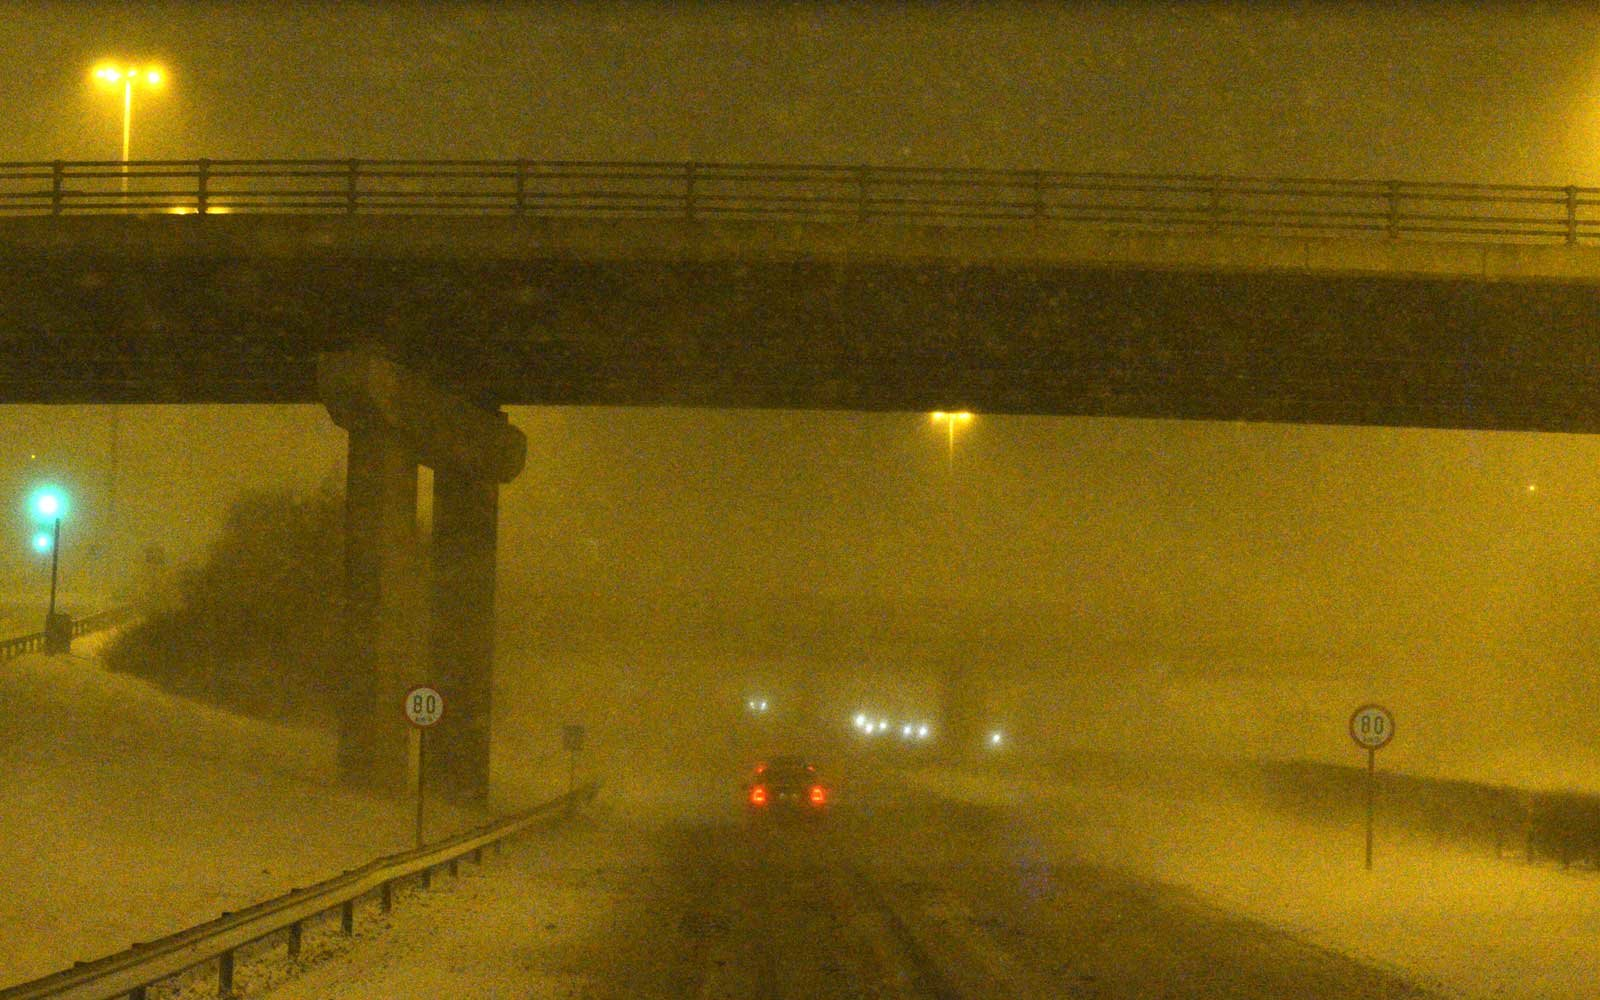 A view of the N1 road near Dublin's Airport as he 'Beast from the East' has hit Ireland